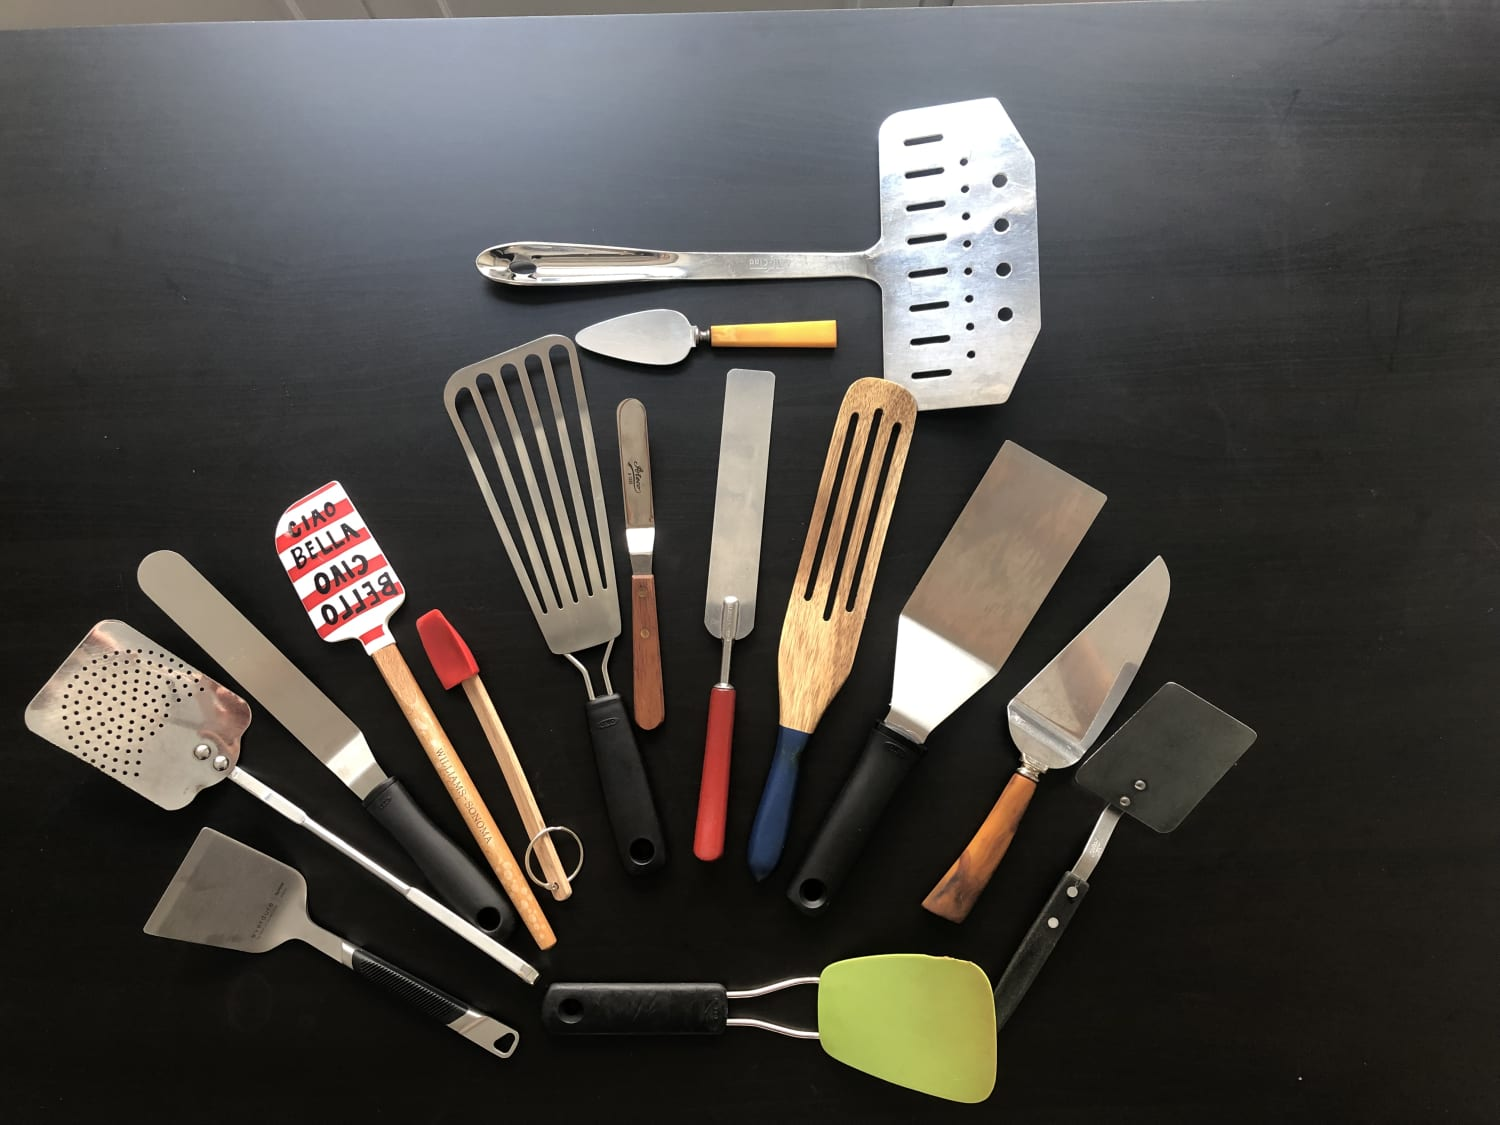 I Have 15 Spatulas and I Need Every Single One of Them